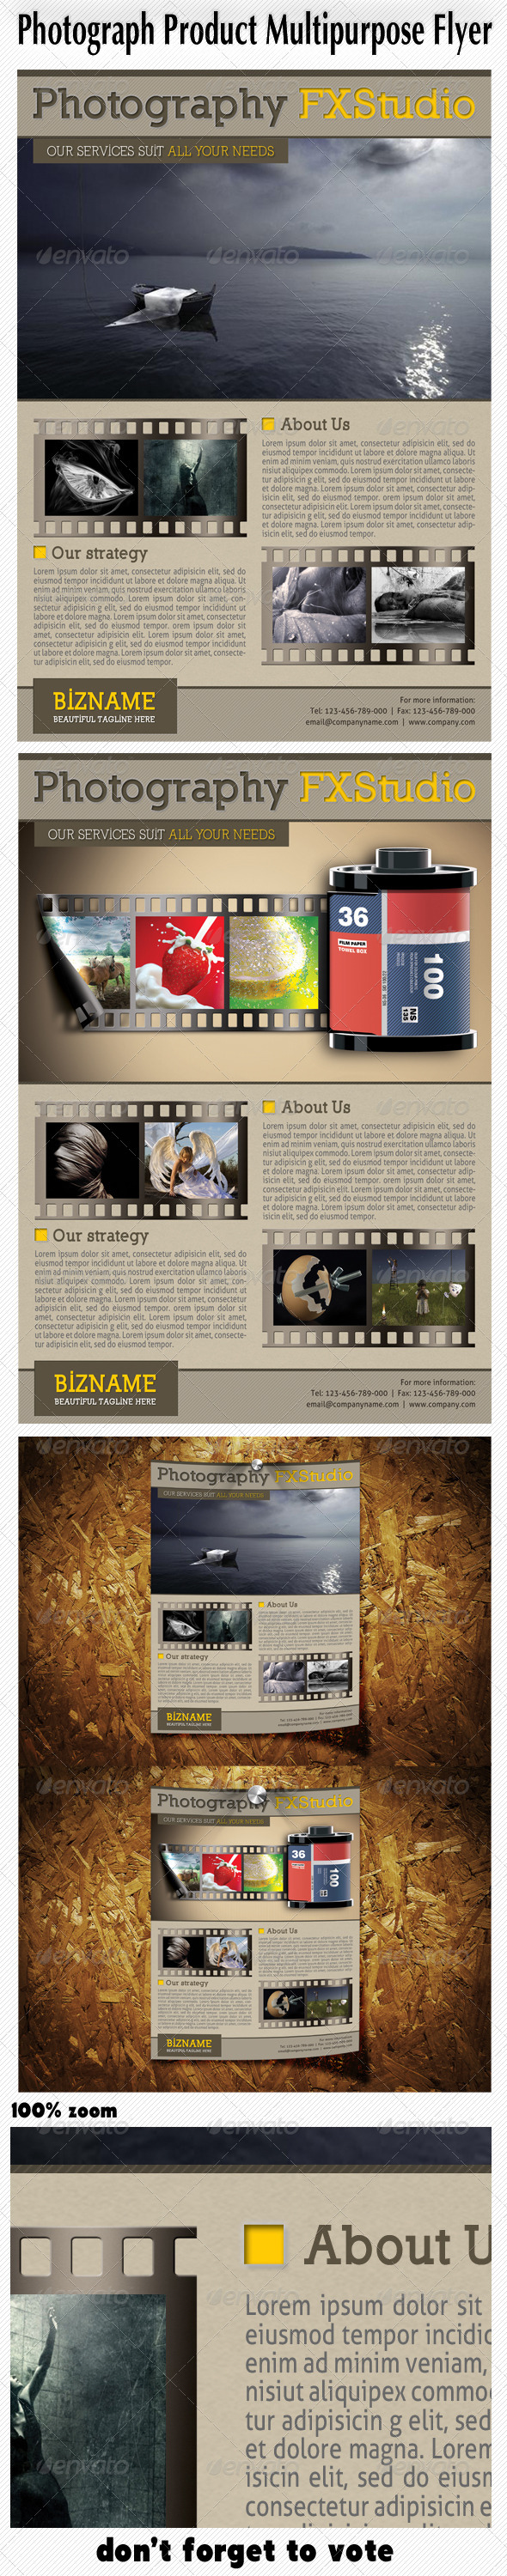 GraphicRiver Photograph Product Multipurpose Flyer 4977568